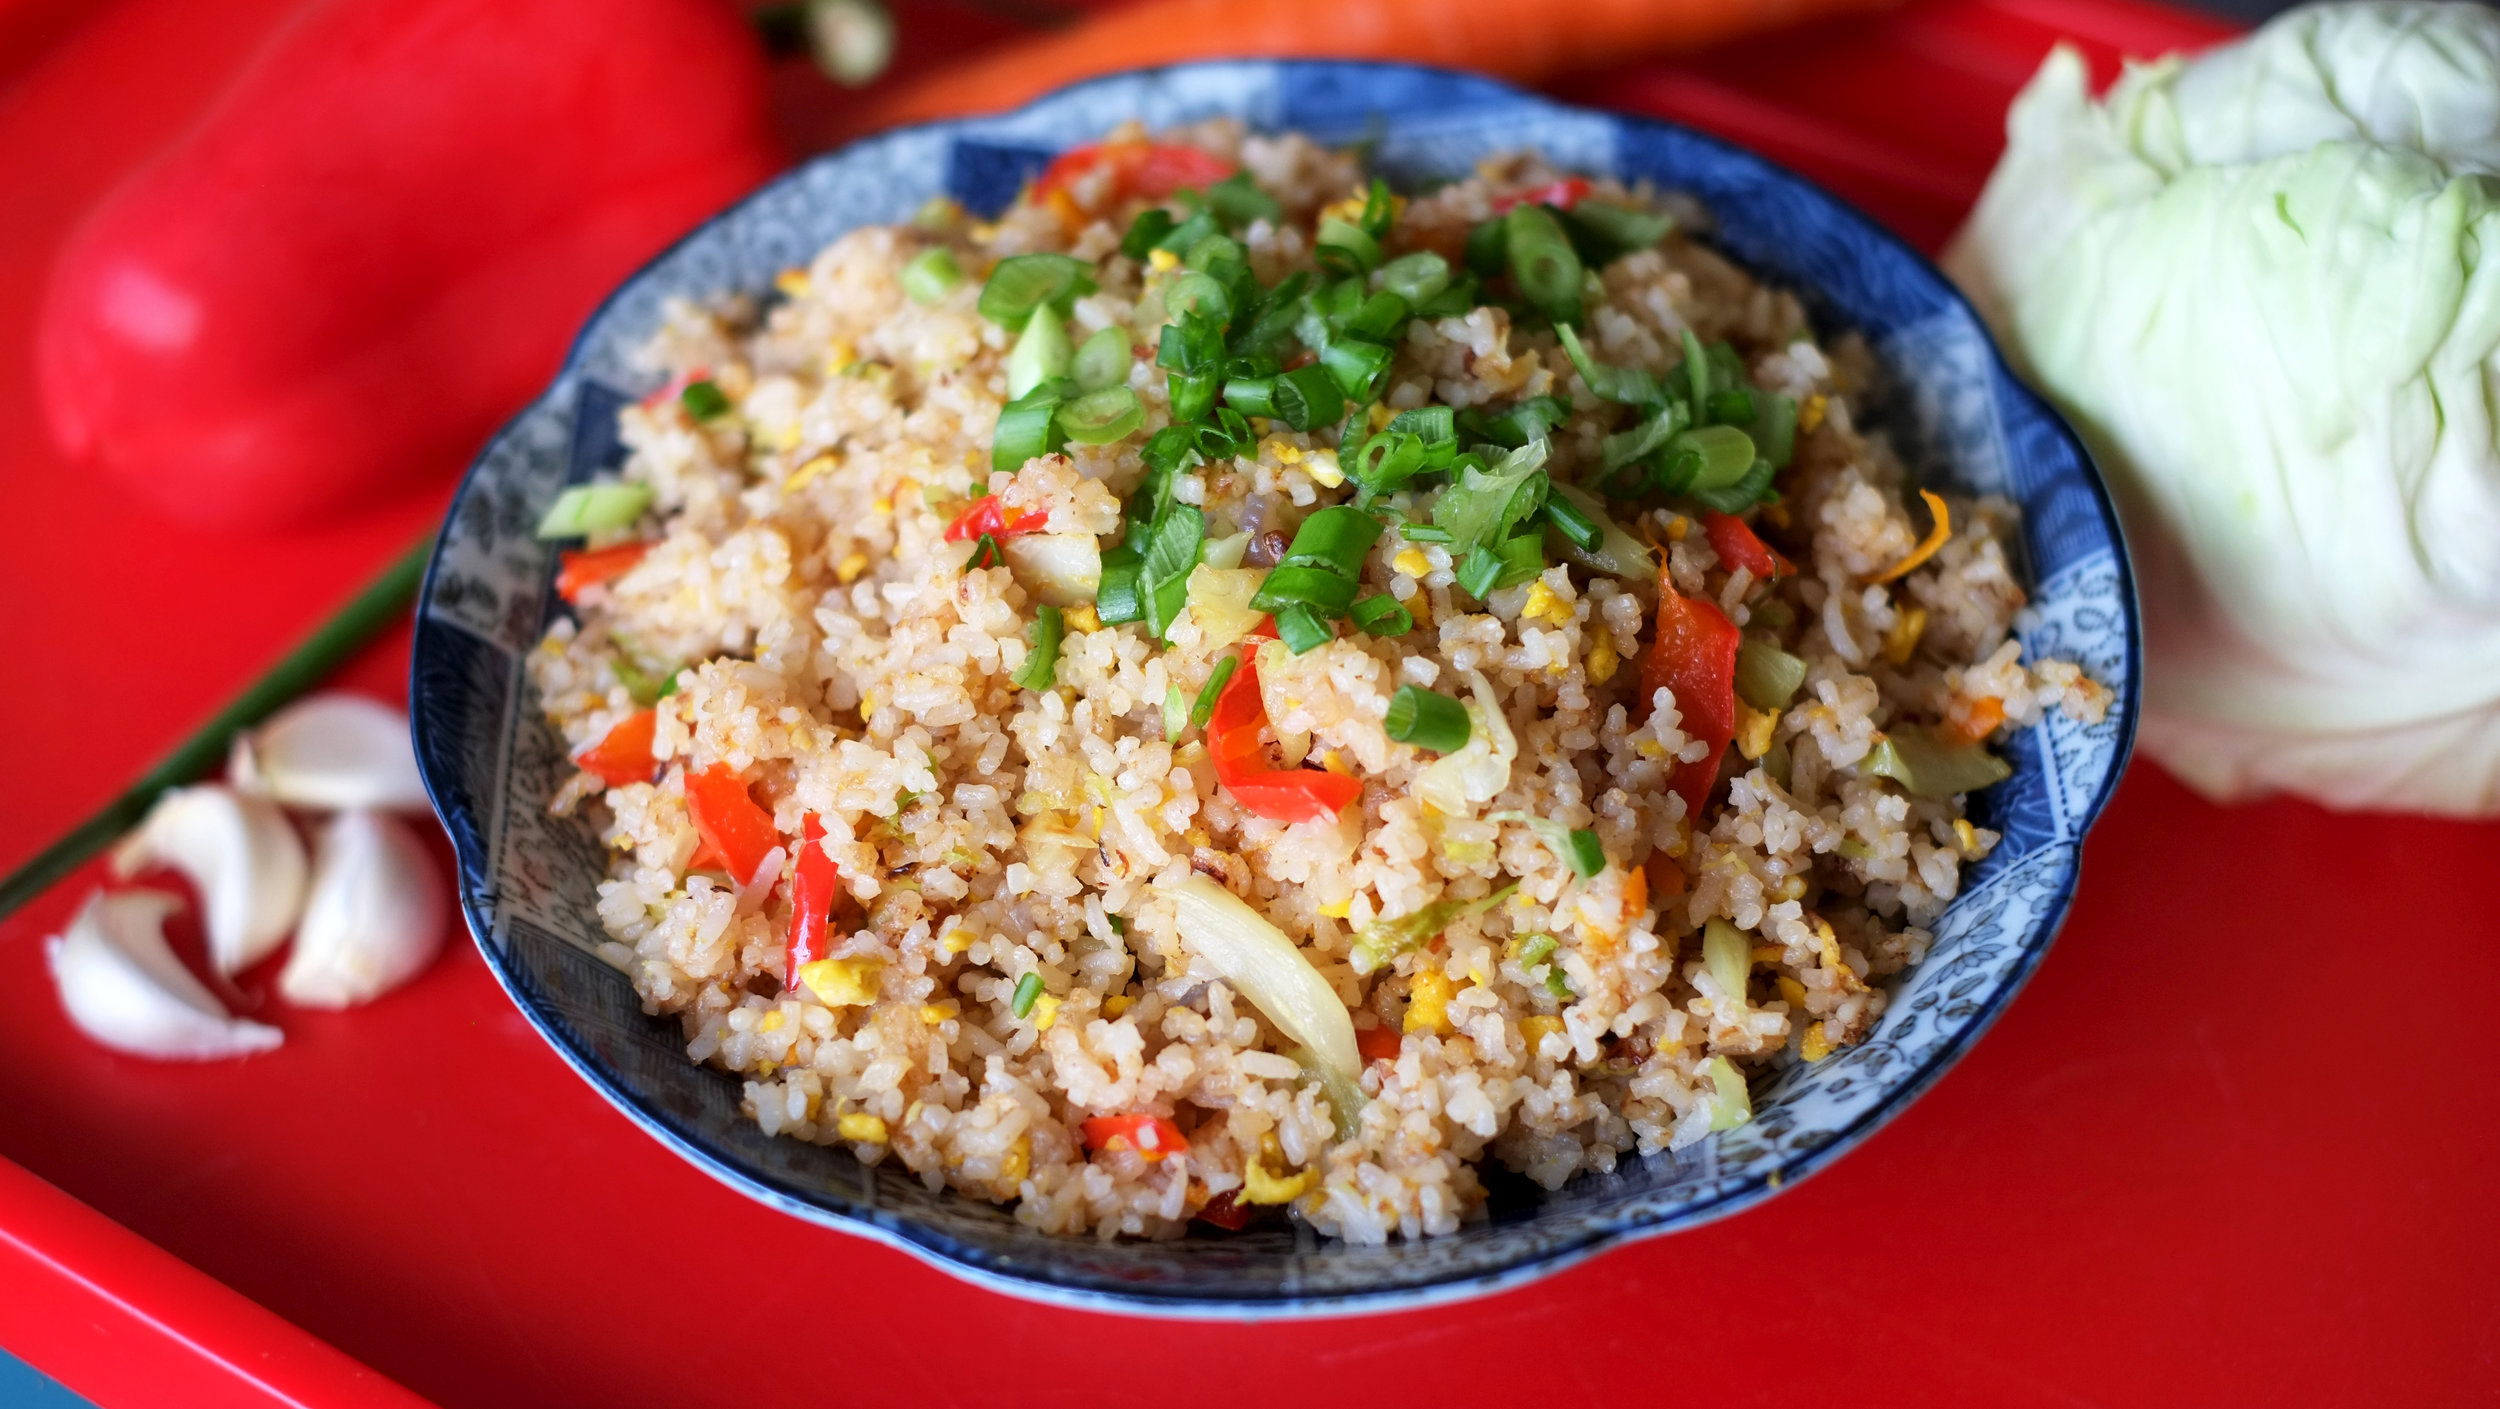 Top tips for easy fried rice kitchen missus ccuart Choice Image